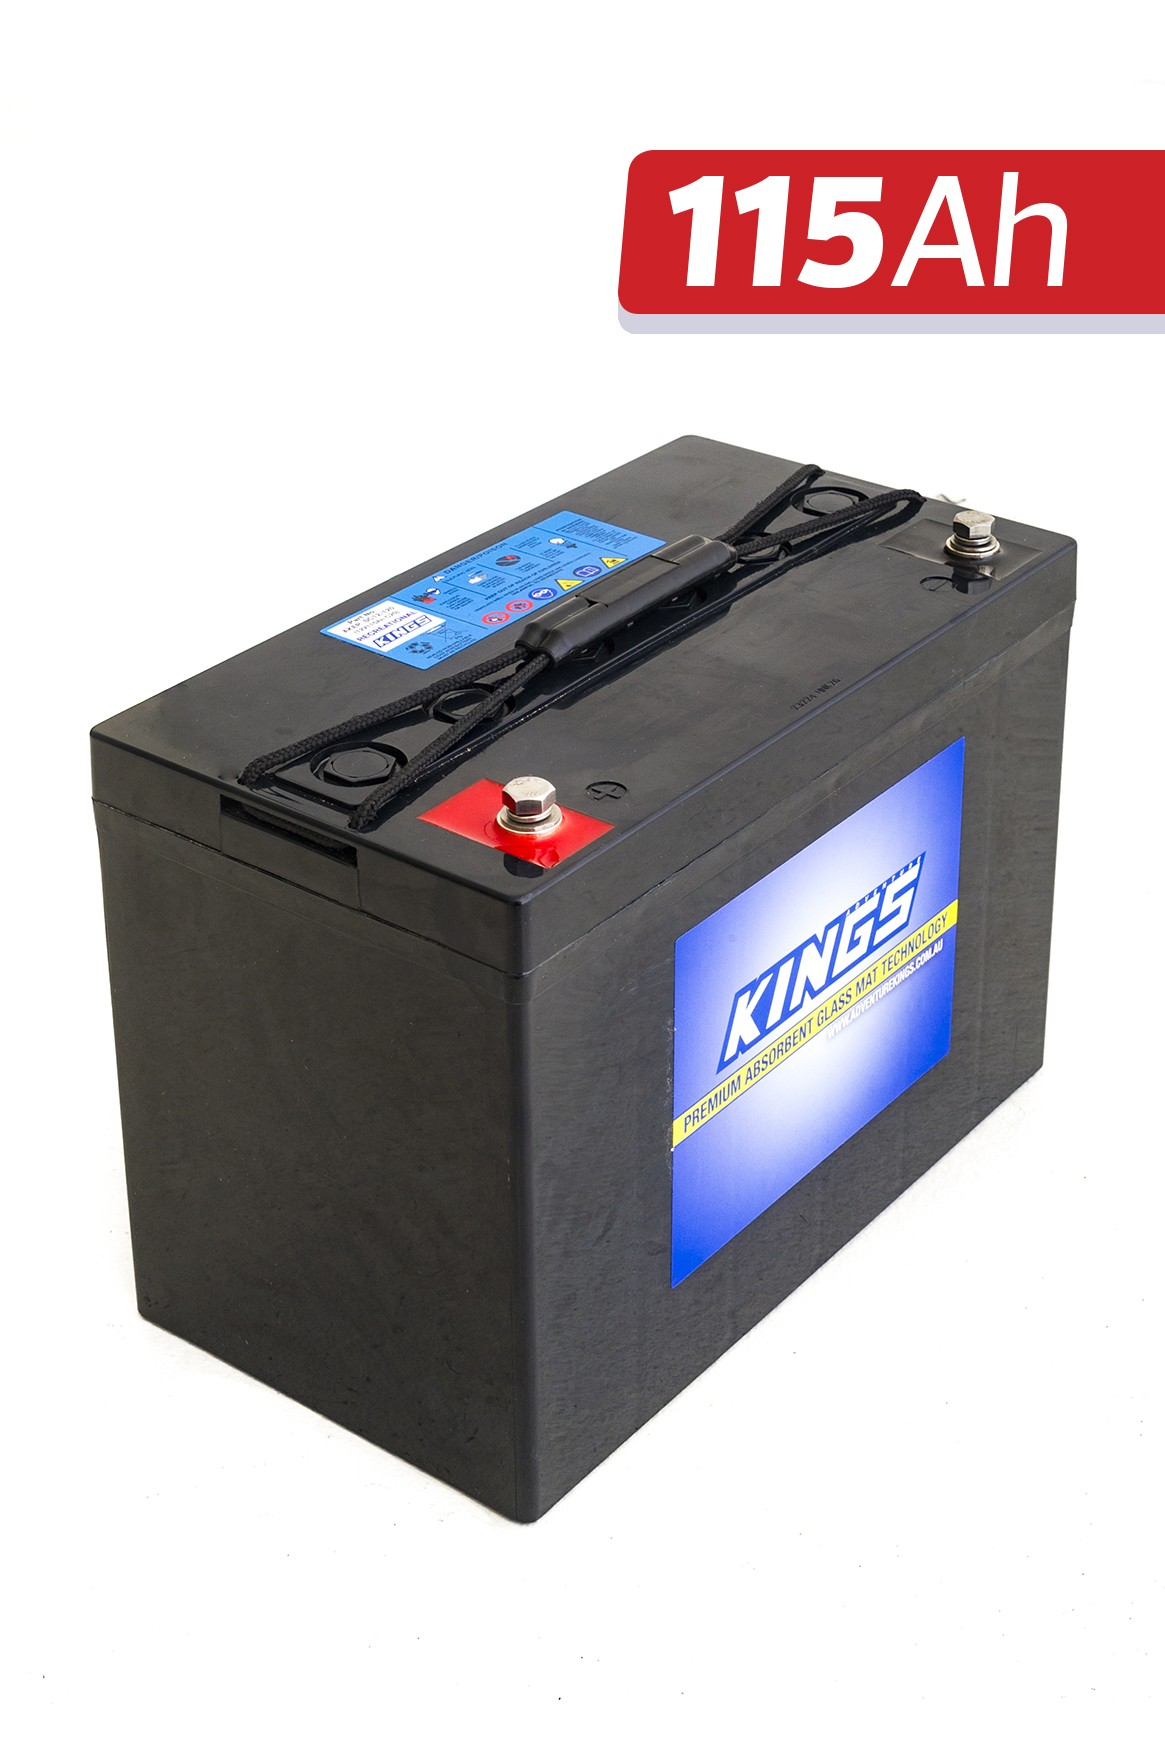 Wiring Multiple Deep Cycle Batteries Together Two 12v Parallel Image Capture 115 On Https